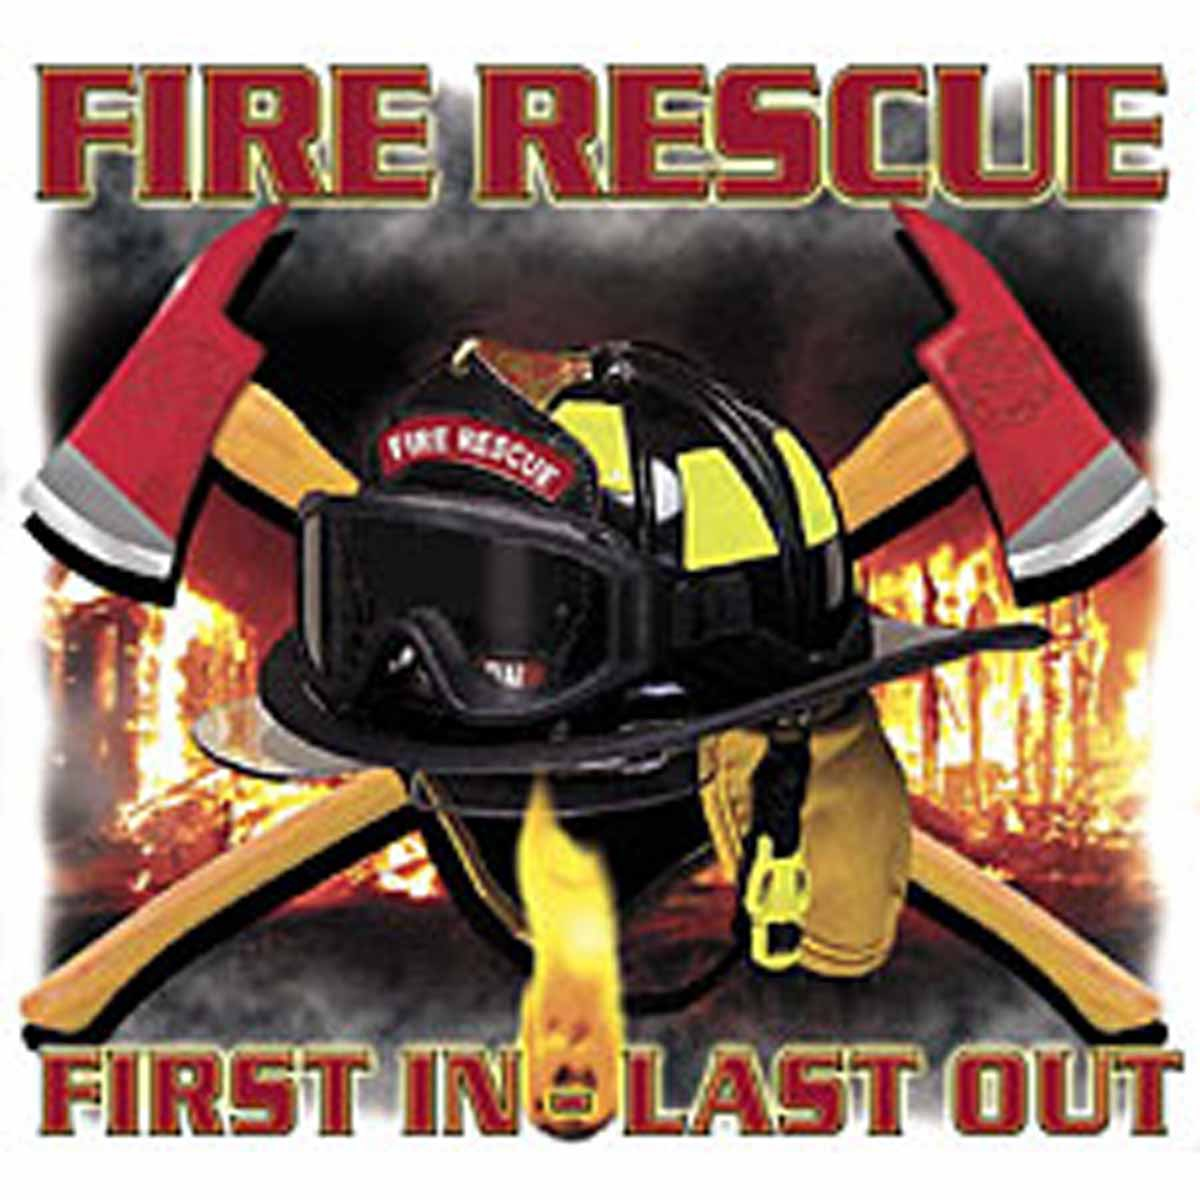 T-shirt HOMME manches courtes - Fire rescue First in Last out - Sapeurs Pompiers - USA - 13488 - blanc